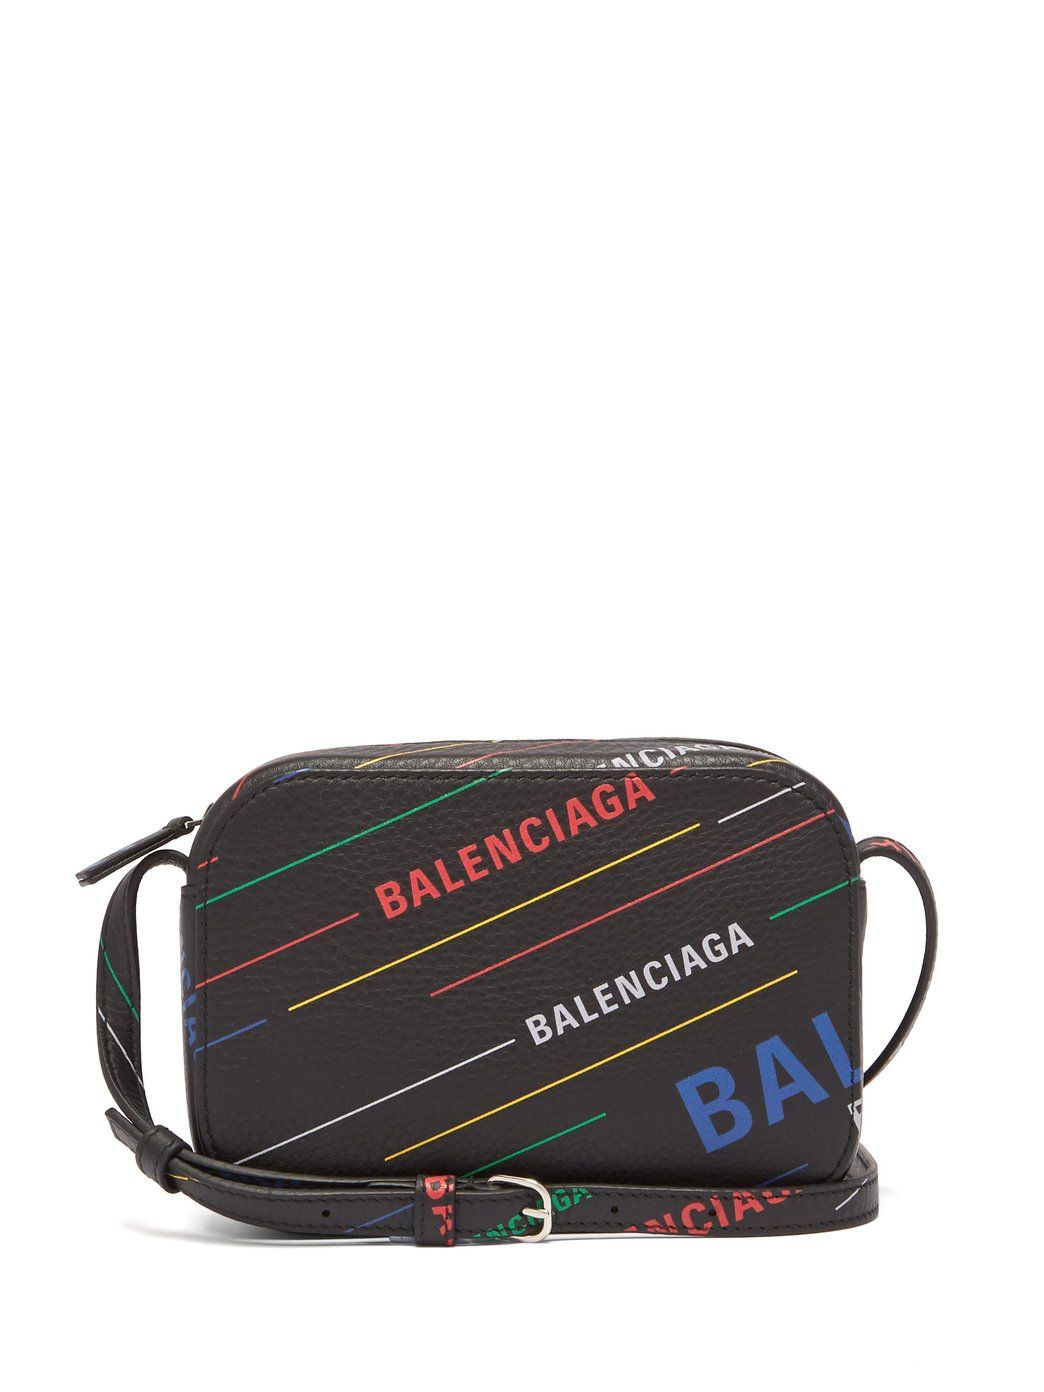 balenciaga-everyday-xs-multicolor-logo-printed-leather-cross-body-bag